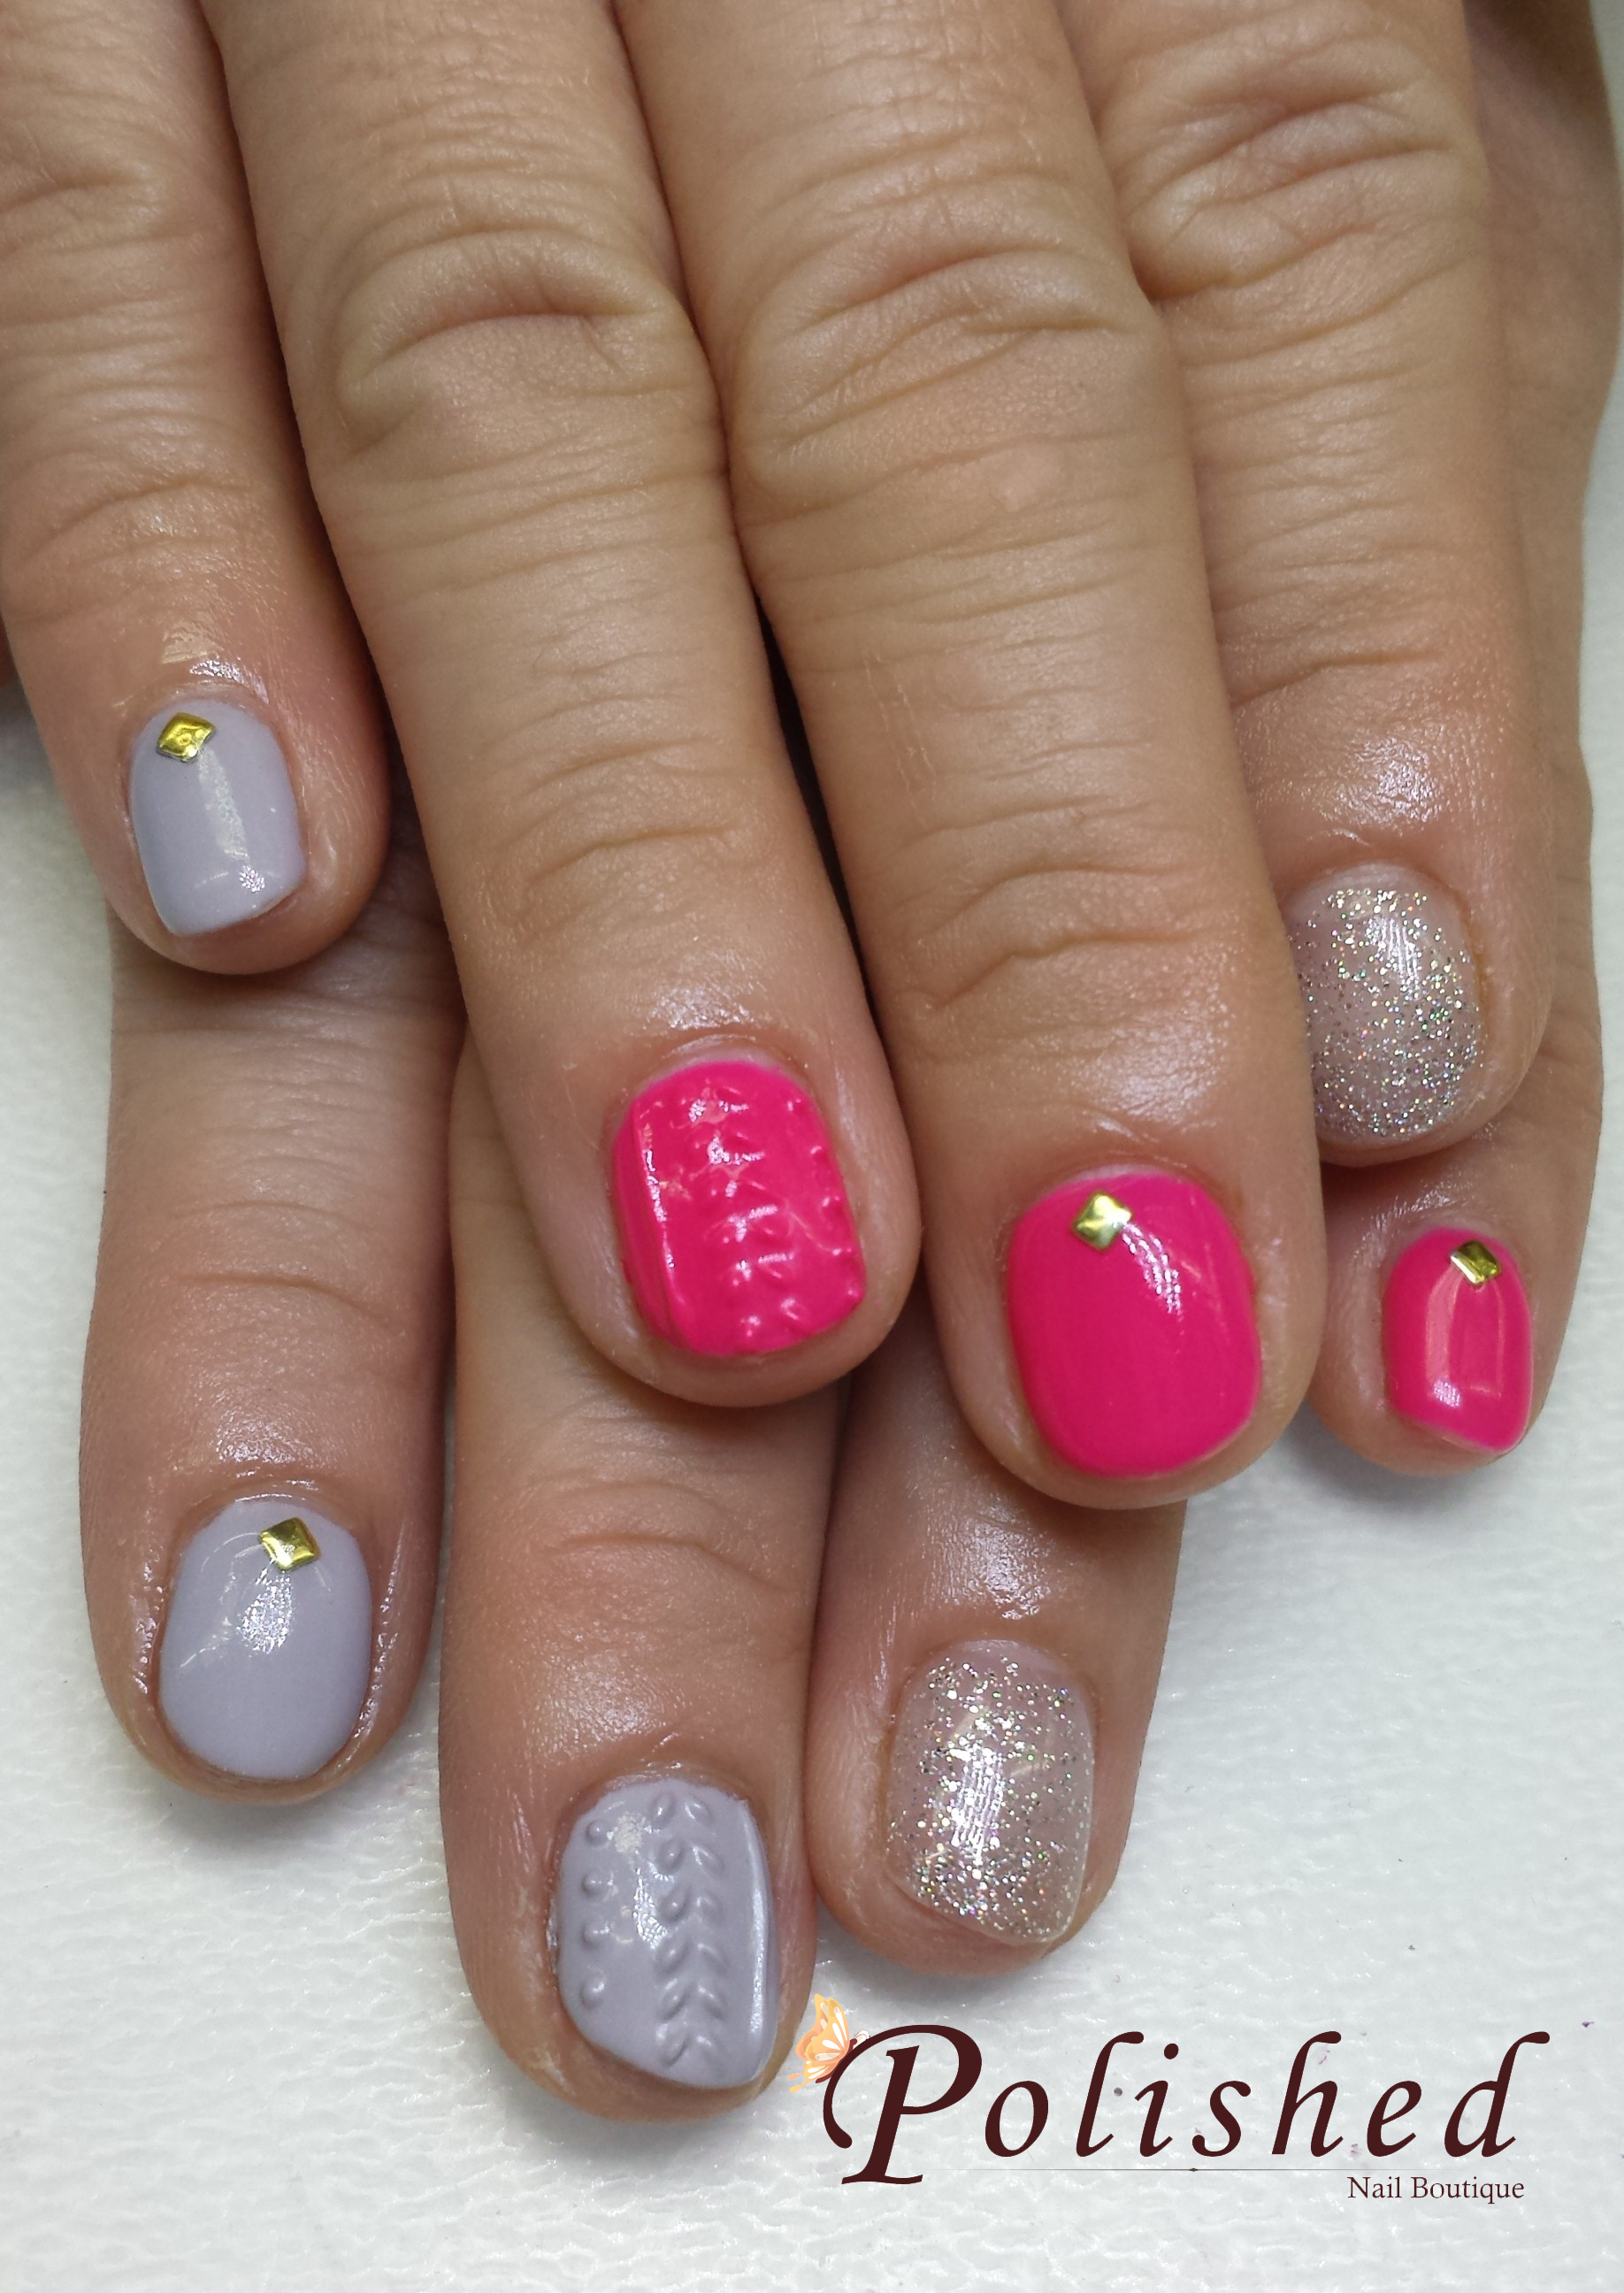 Gel Manicure: Knitted Nails | Polished Nail Boutique